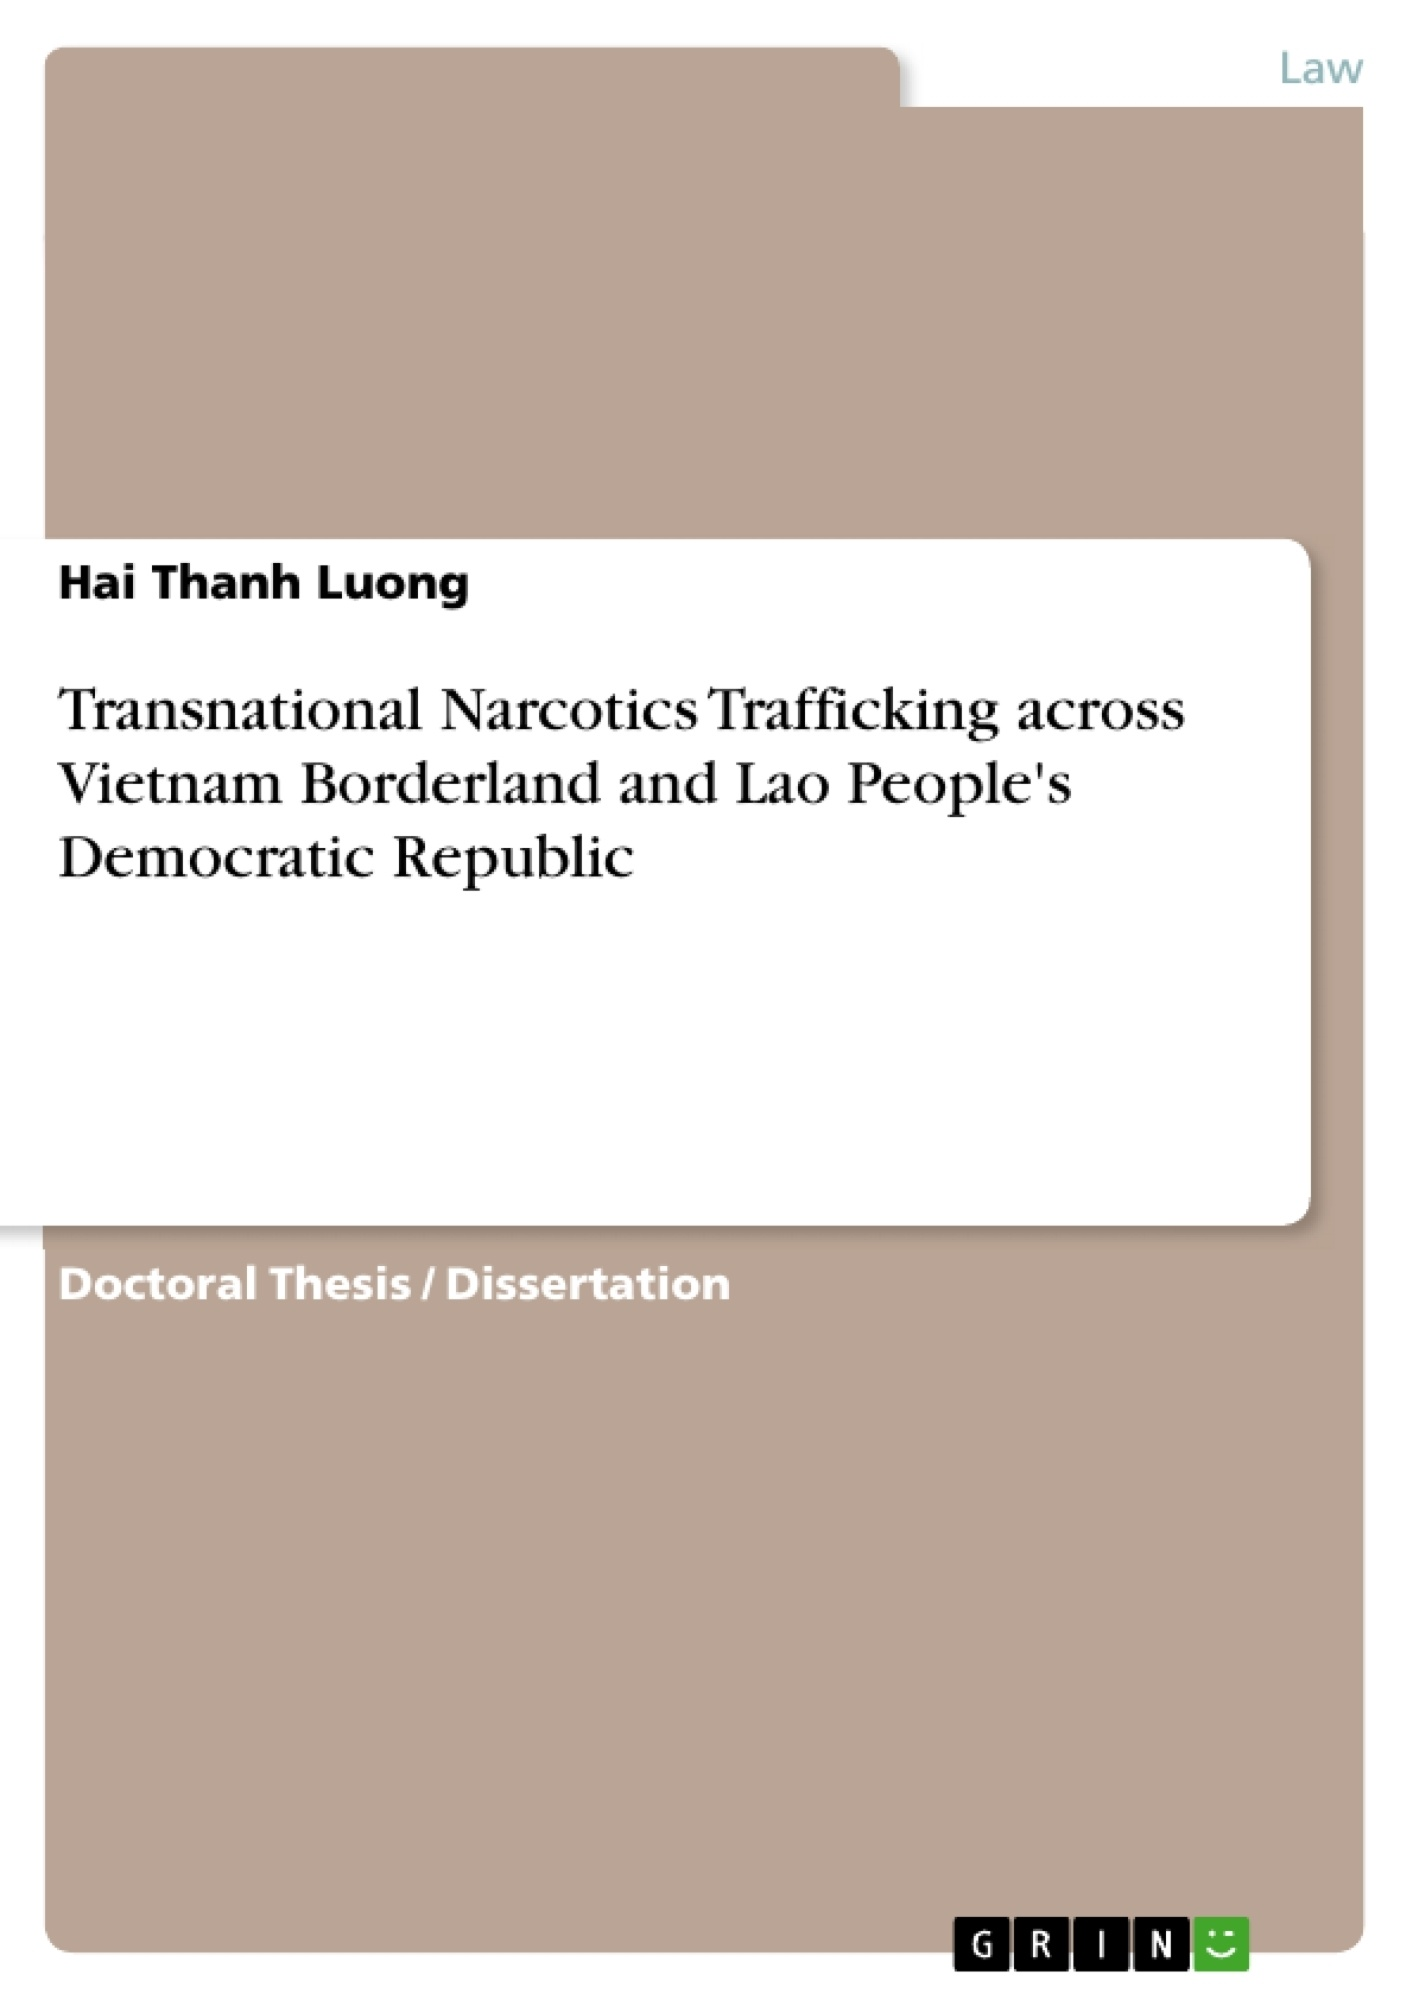 Title: Transnational Narcotics Trafficking across Vietnam Borderland and Lao People's Democratic Republic